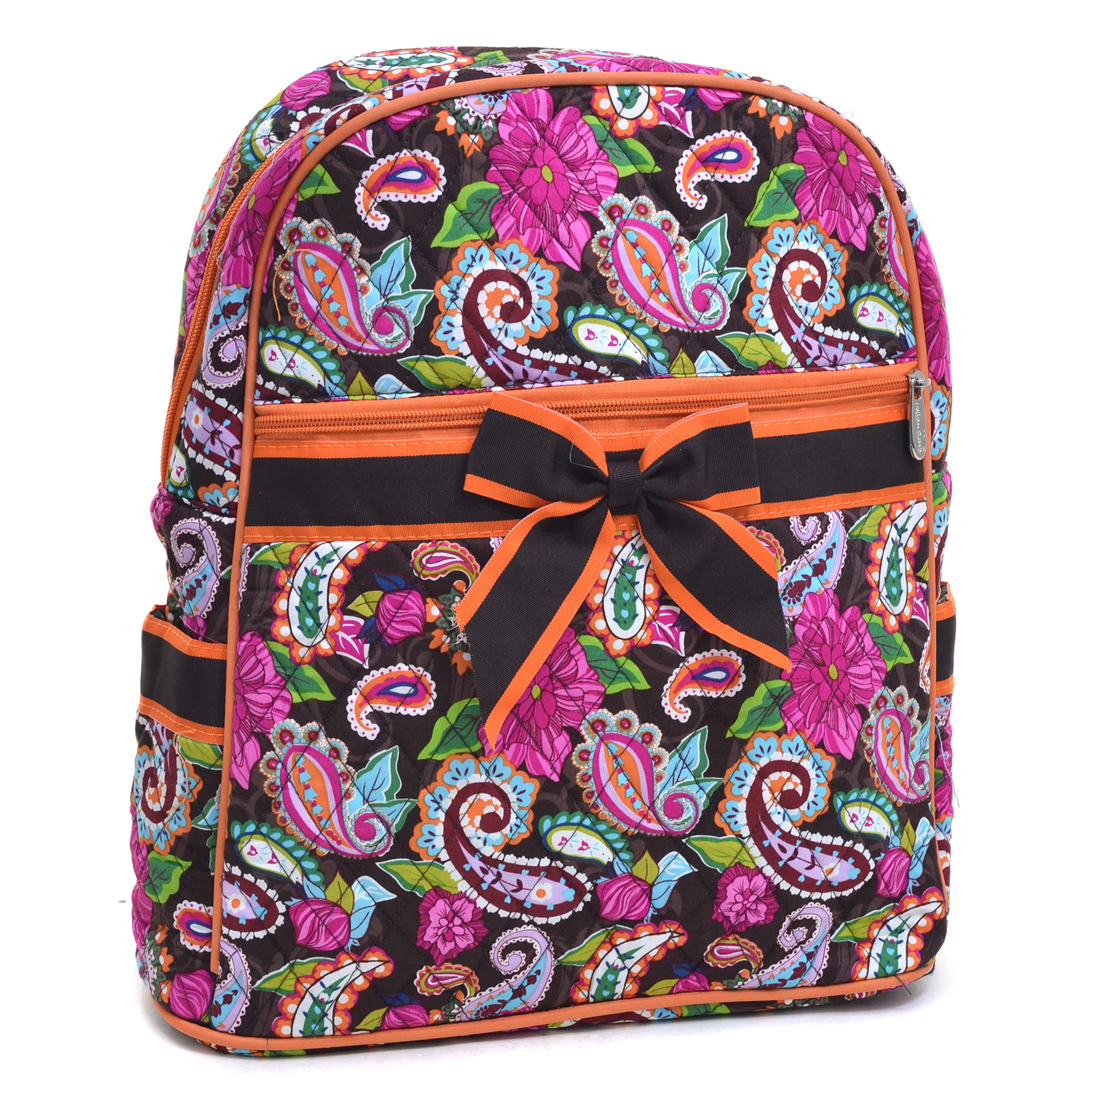 Rosen Blue® Paisley Printed Quilted Backpack - Brown/Orange